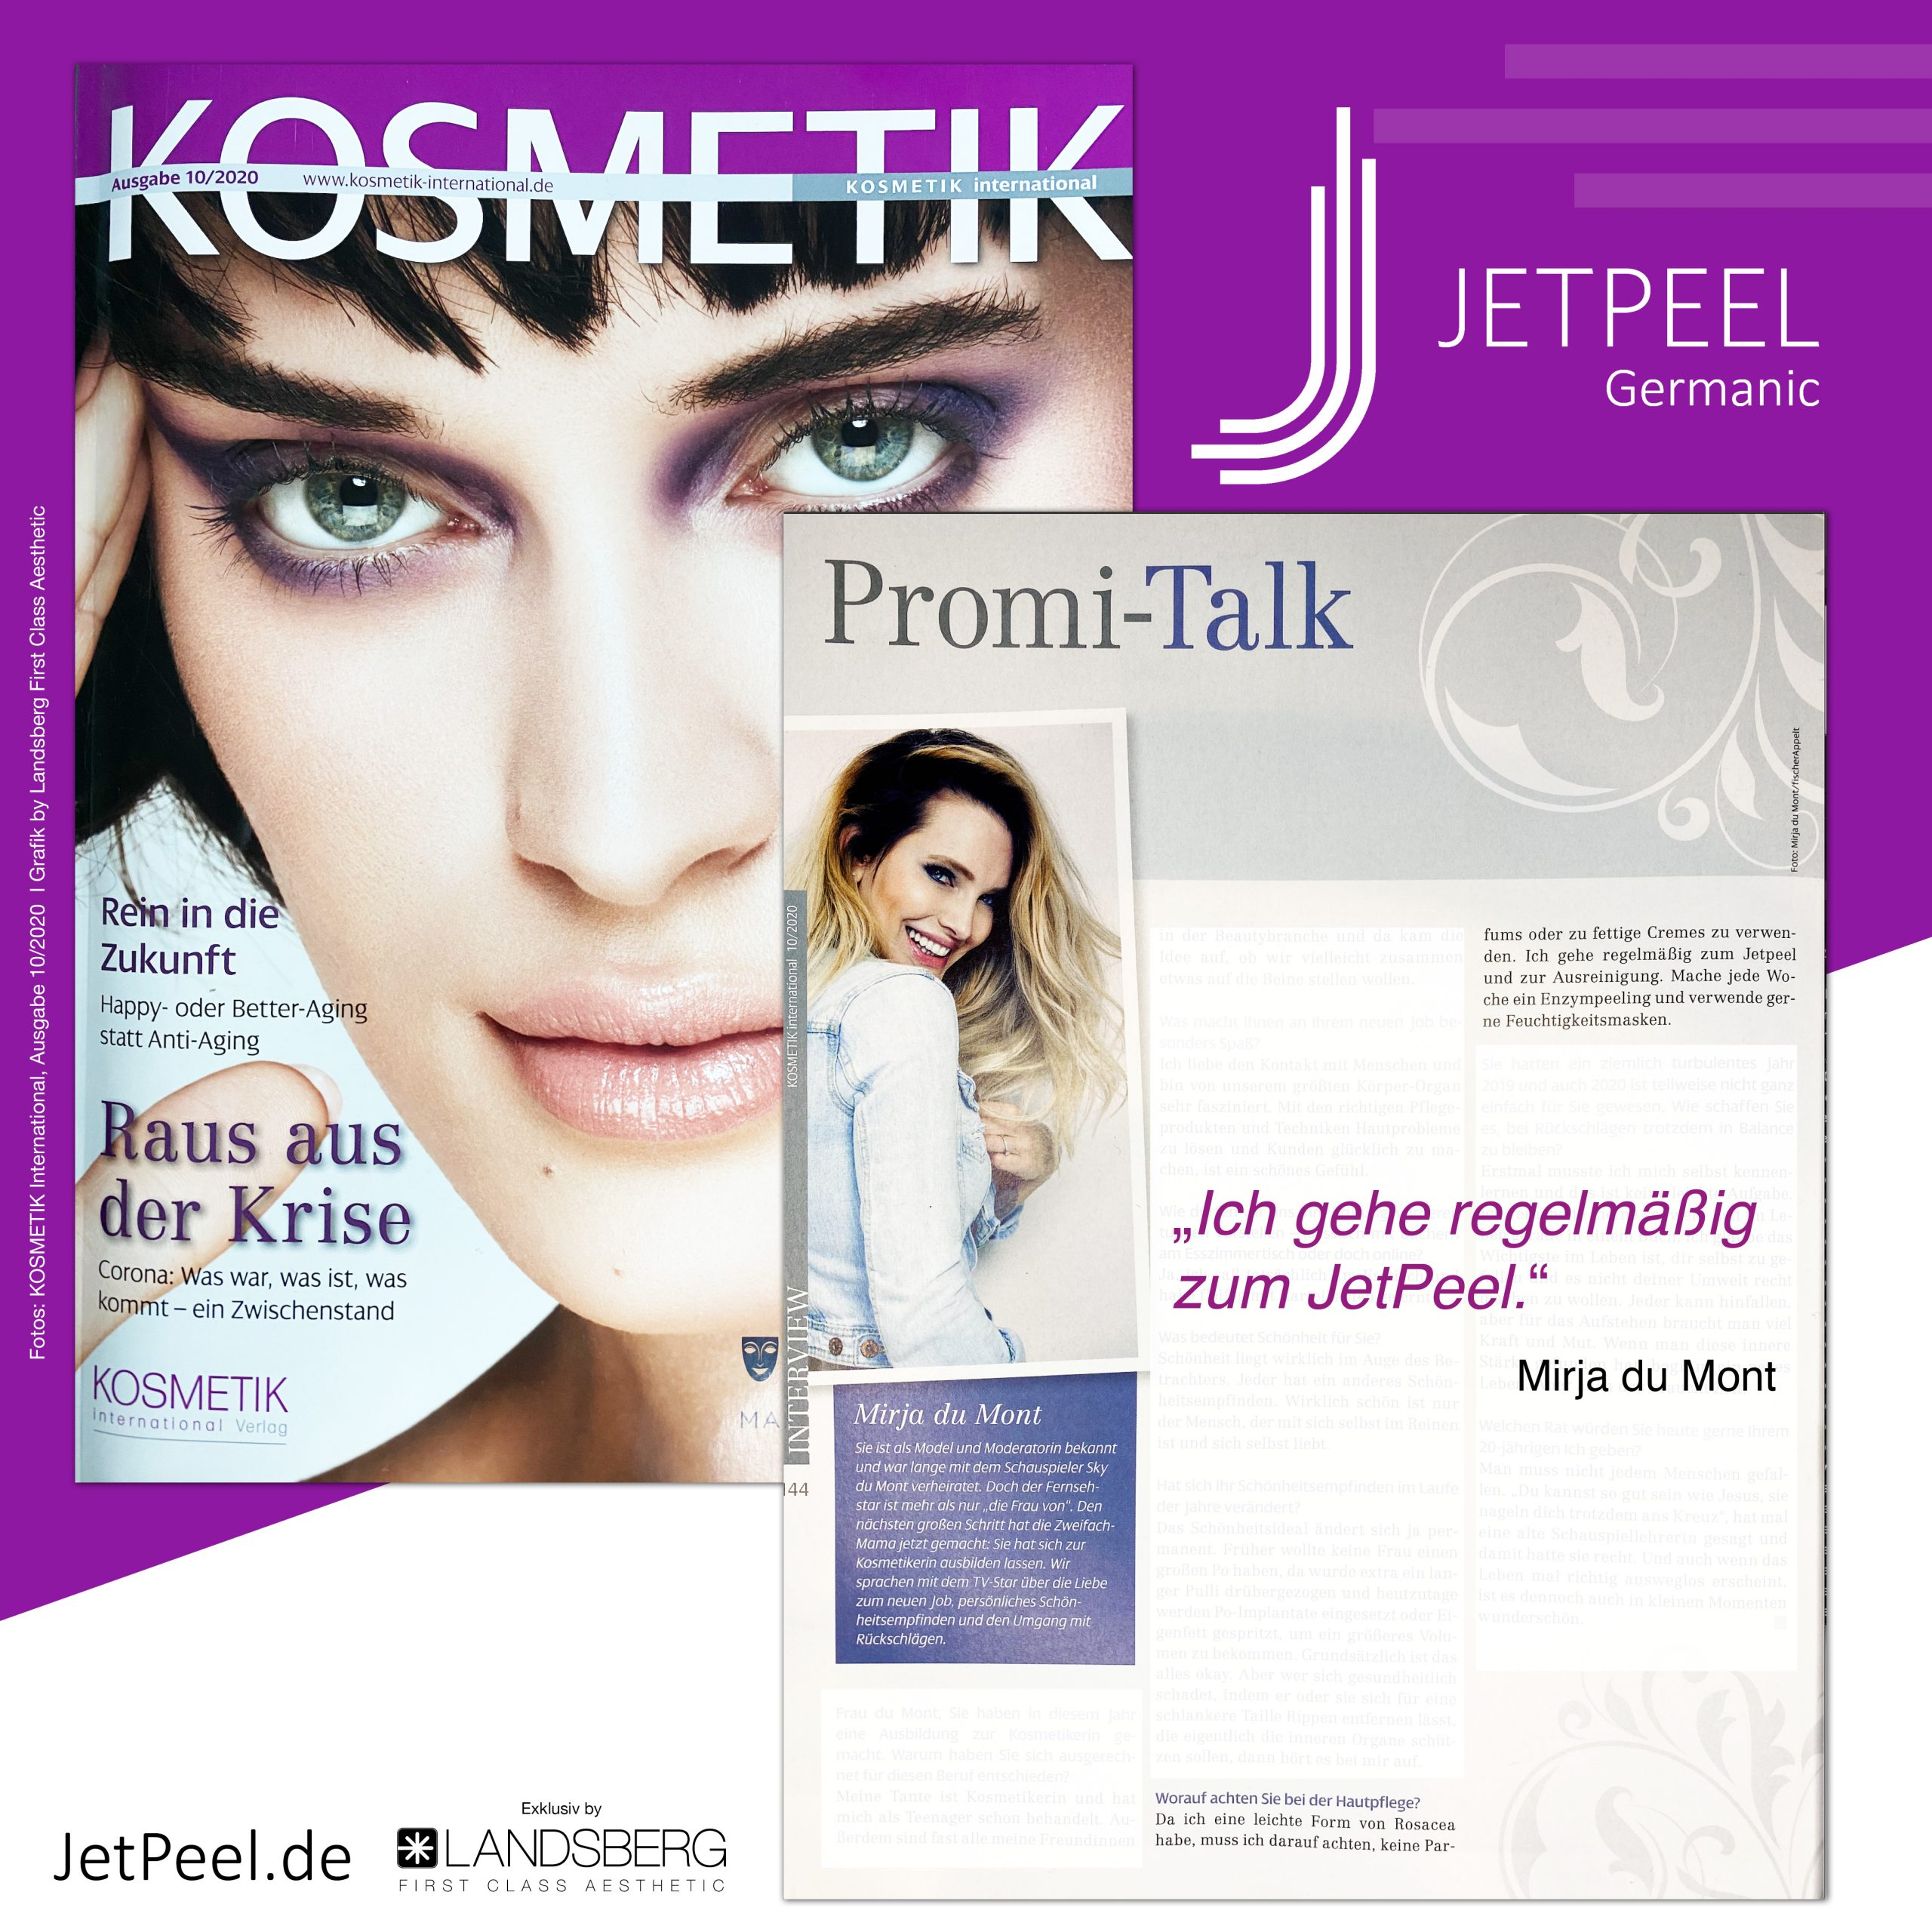 Mirja du Mont über JetPeel im Interview mit KOSMETIK International